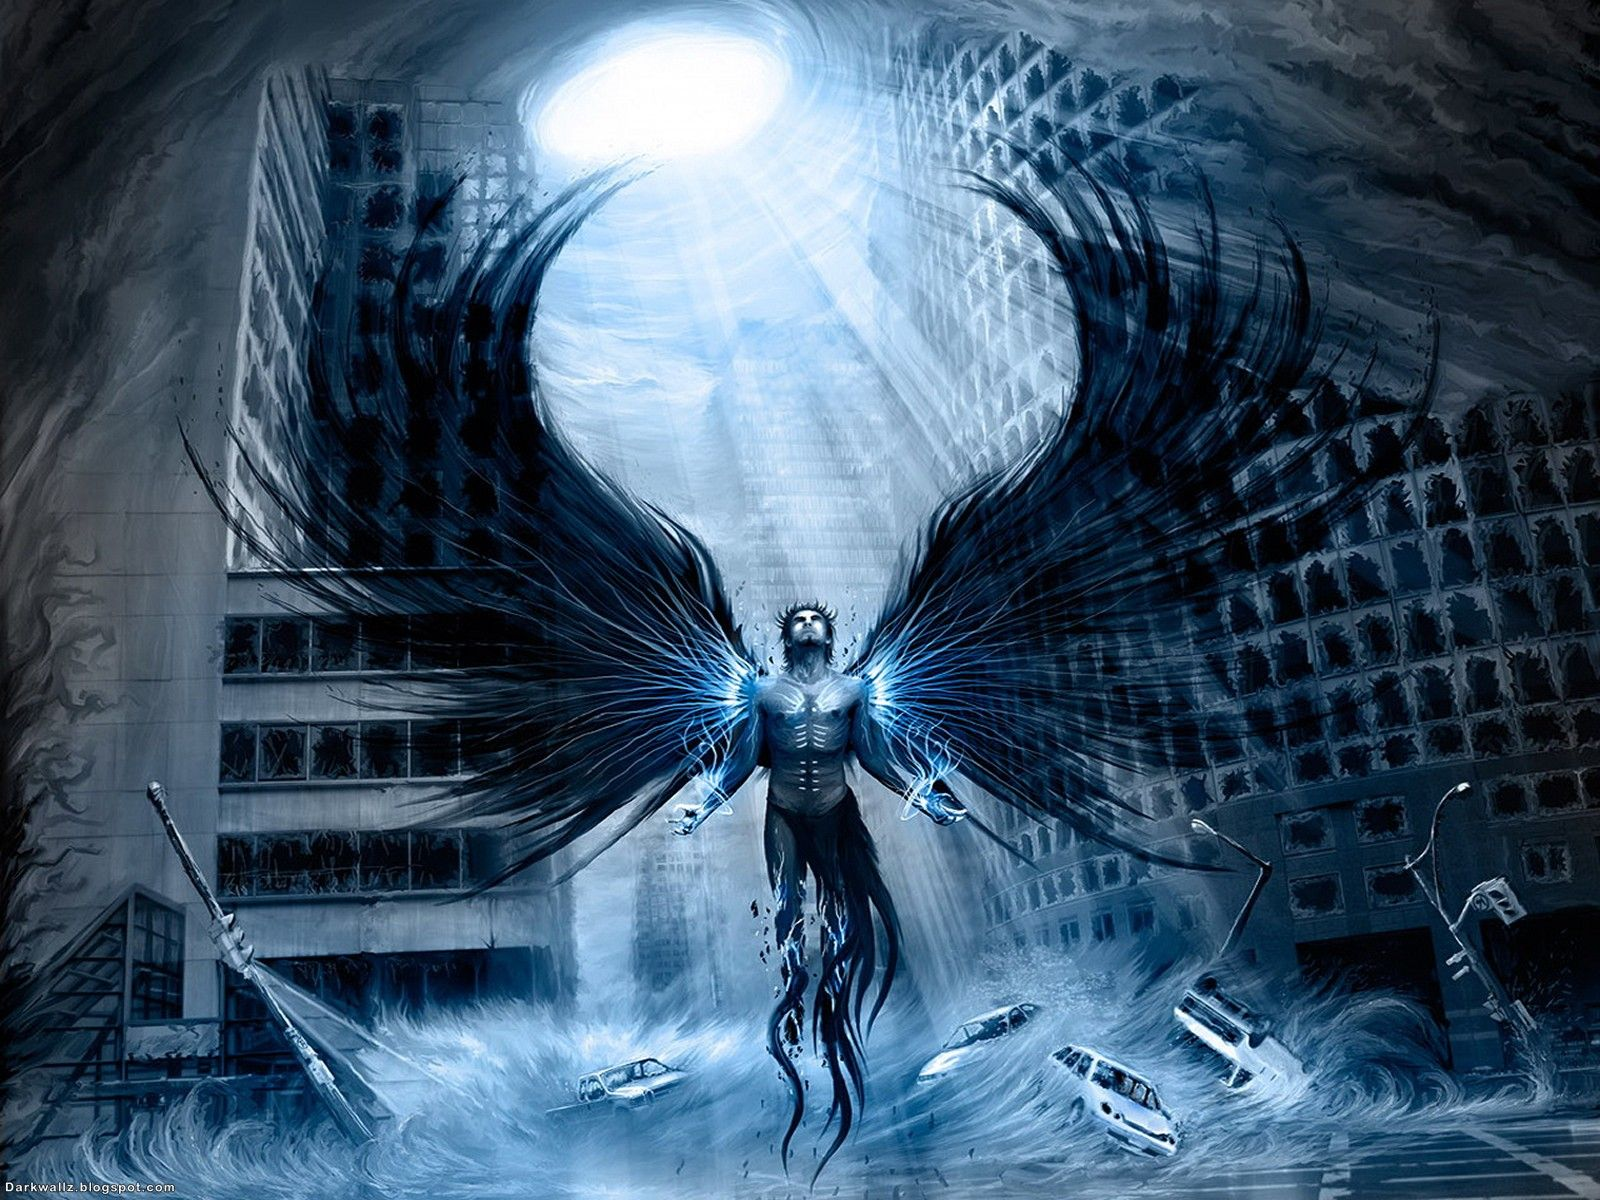 Evil Angel Angel Wallpaper Dark Angel Wallpaper Conceptual Illustration